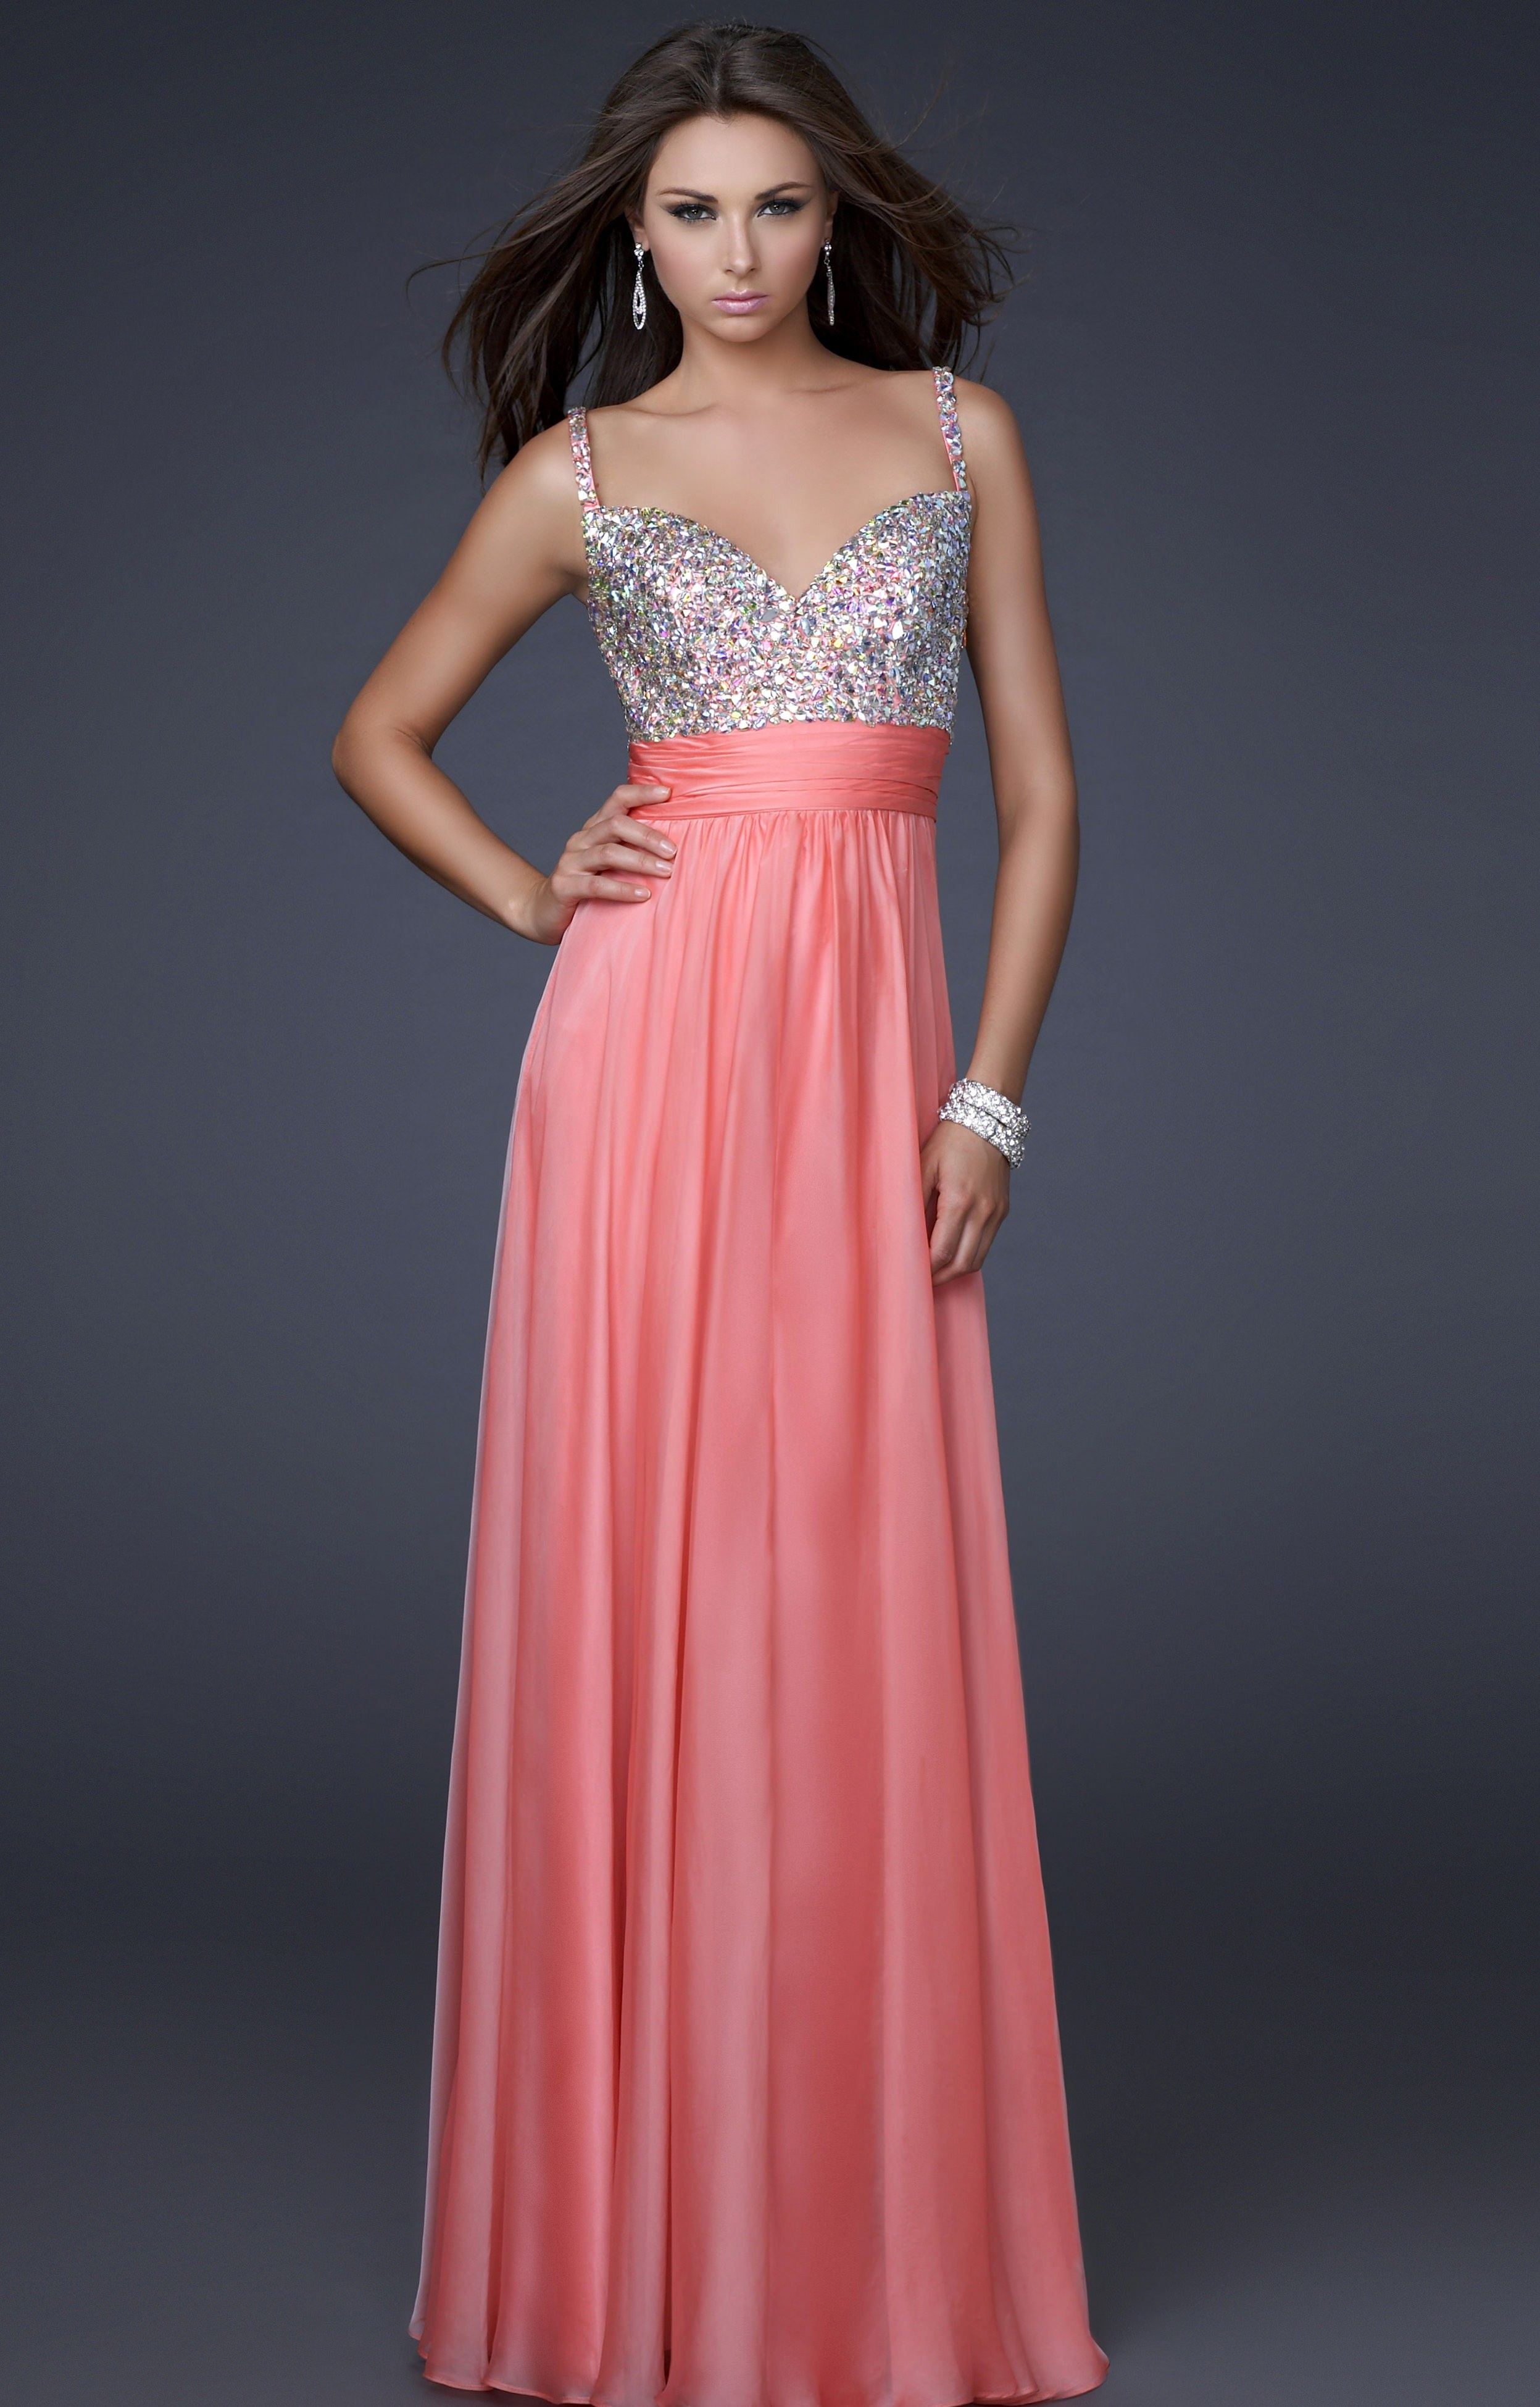 La Femme 16802 - Dream On Gown Prom Dress